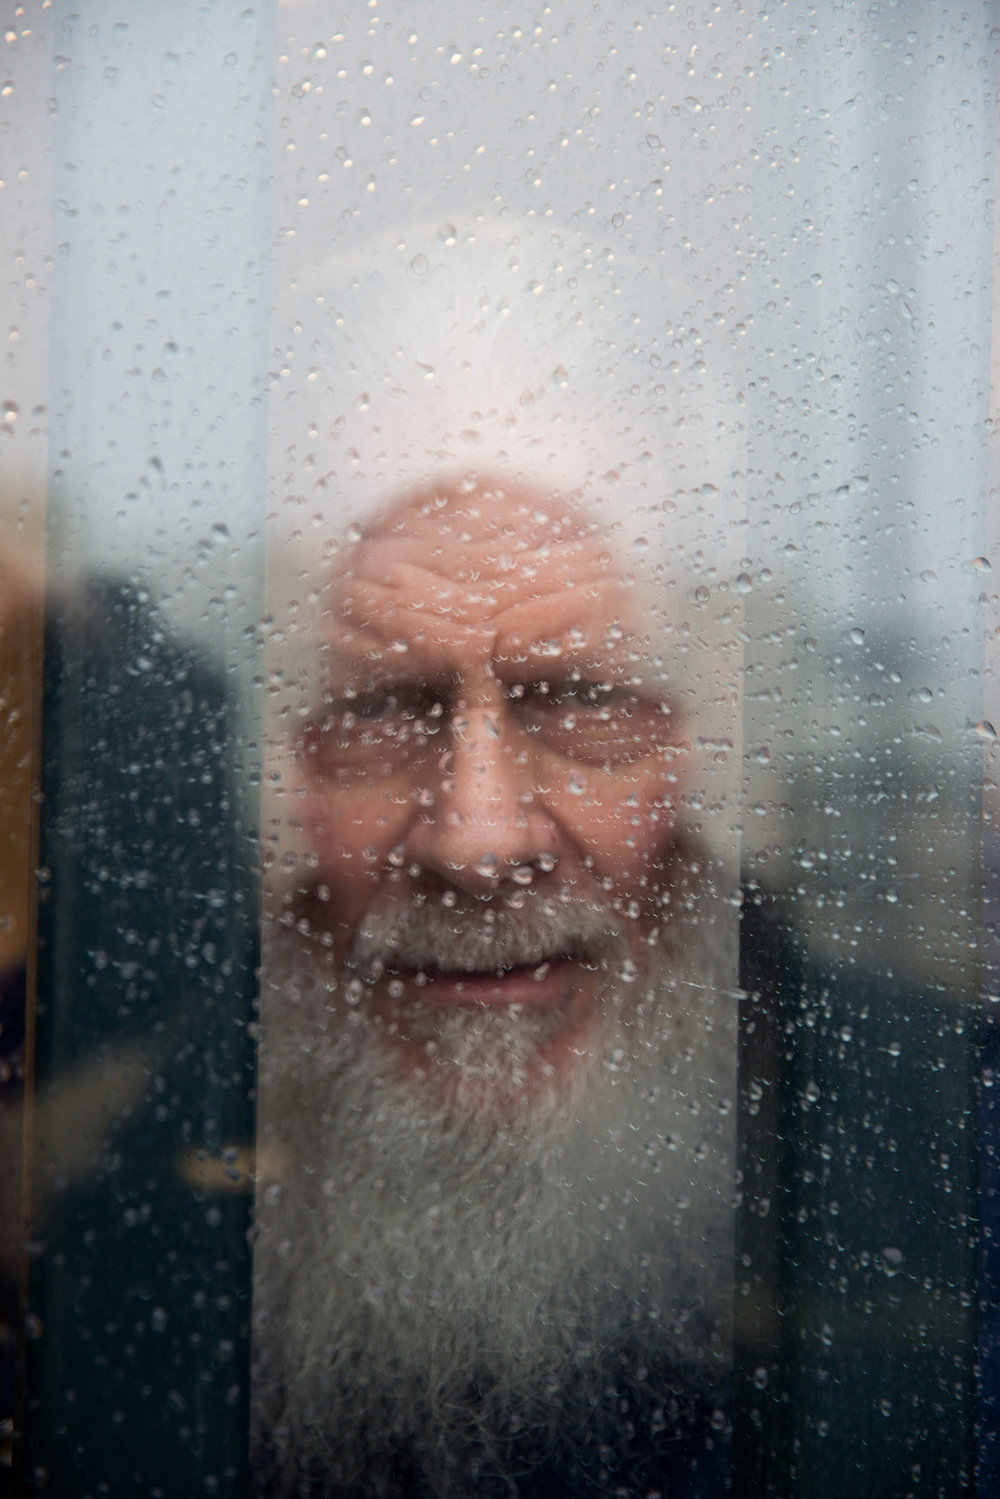 Robert, 70, looks out his cell window. He has spent nearly 30 years in prison after being convicted of murder. In his free time, Robert mentors younger prisoners who have come in with drug addictions, something he's very passionate about.